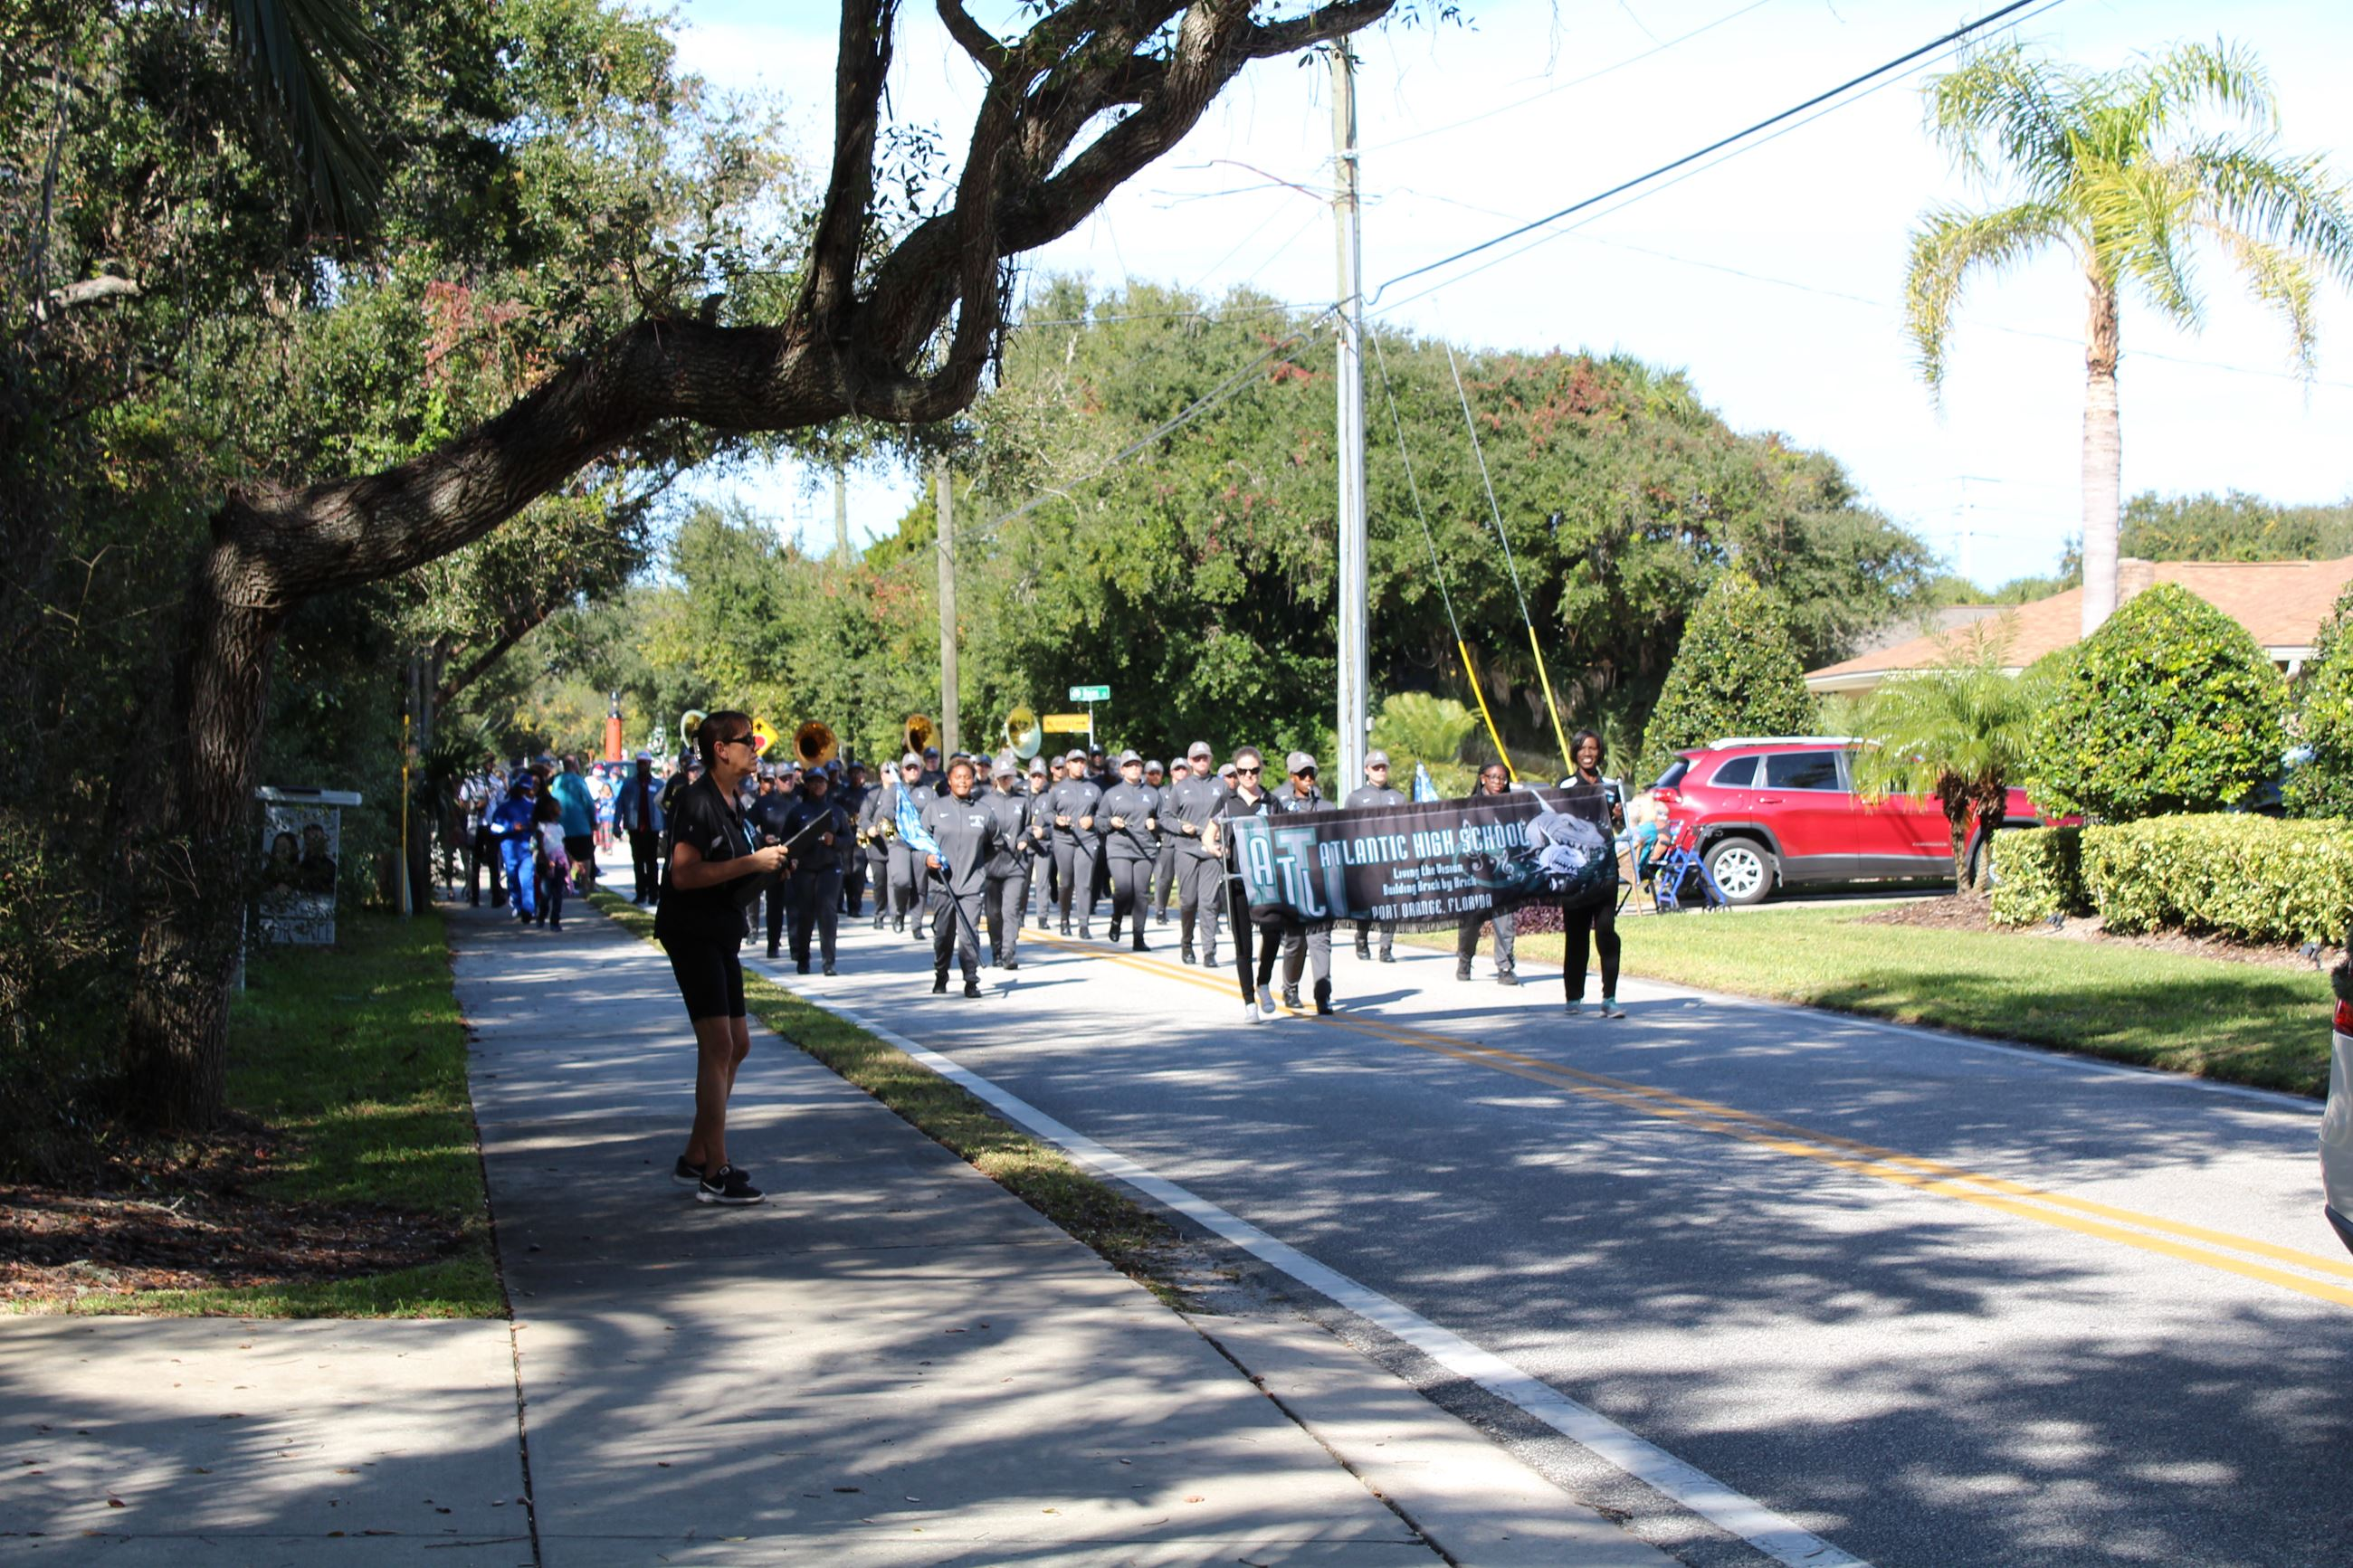 Atlantic high school band kids carrying banner